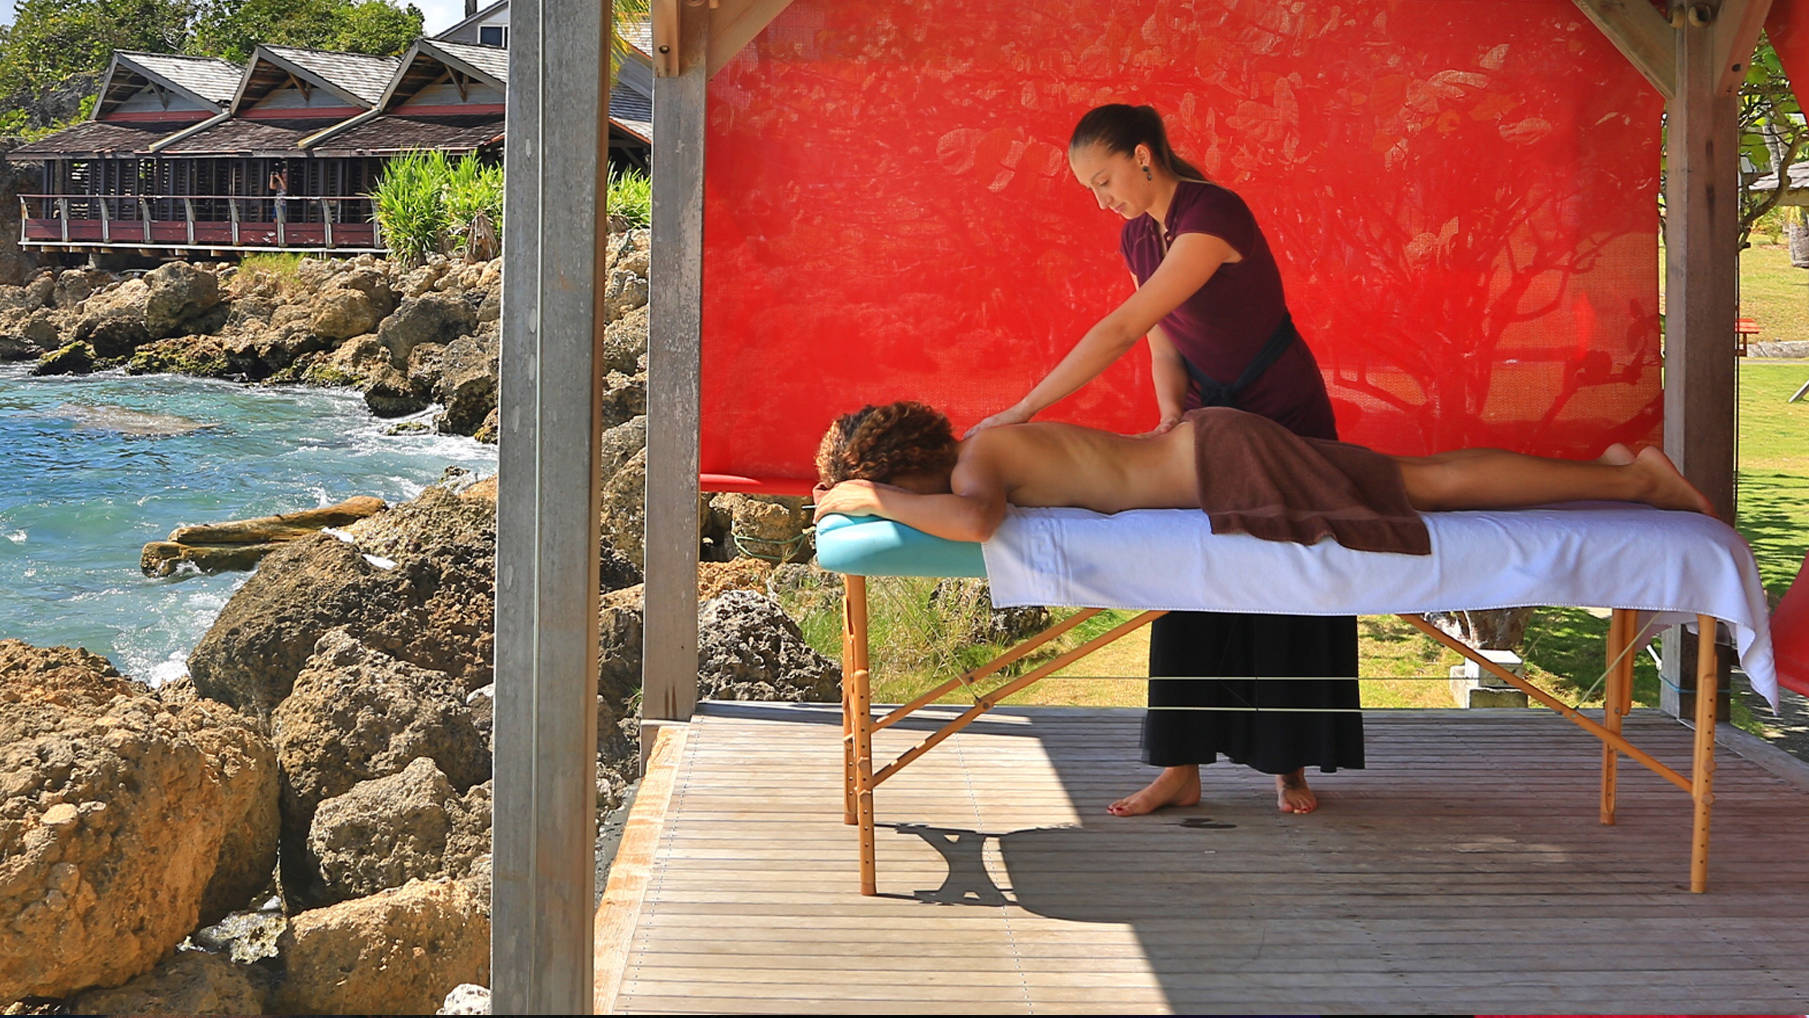 Creole Beach Massage.jpg